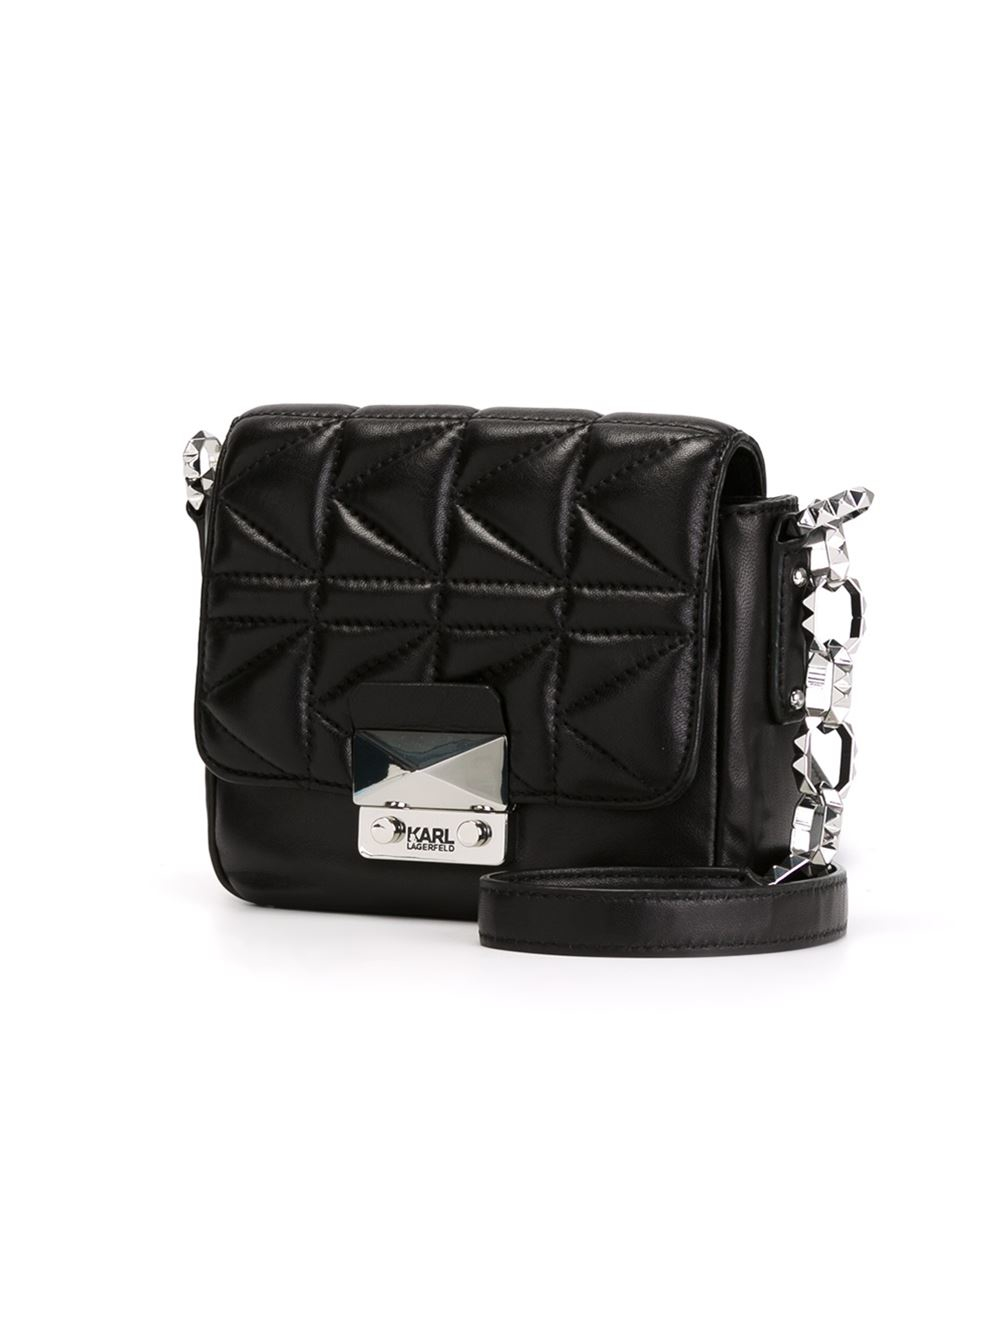 a64edc5ffe Karl Lagerfeld Small Quilted Crossbody Bag in Black - Lyst